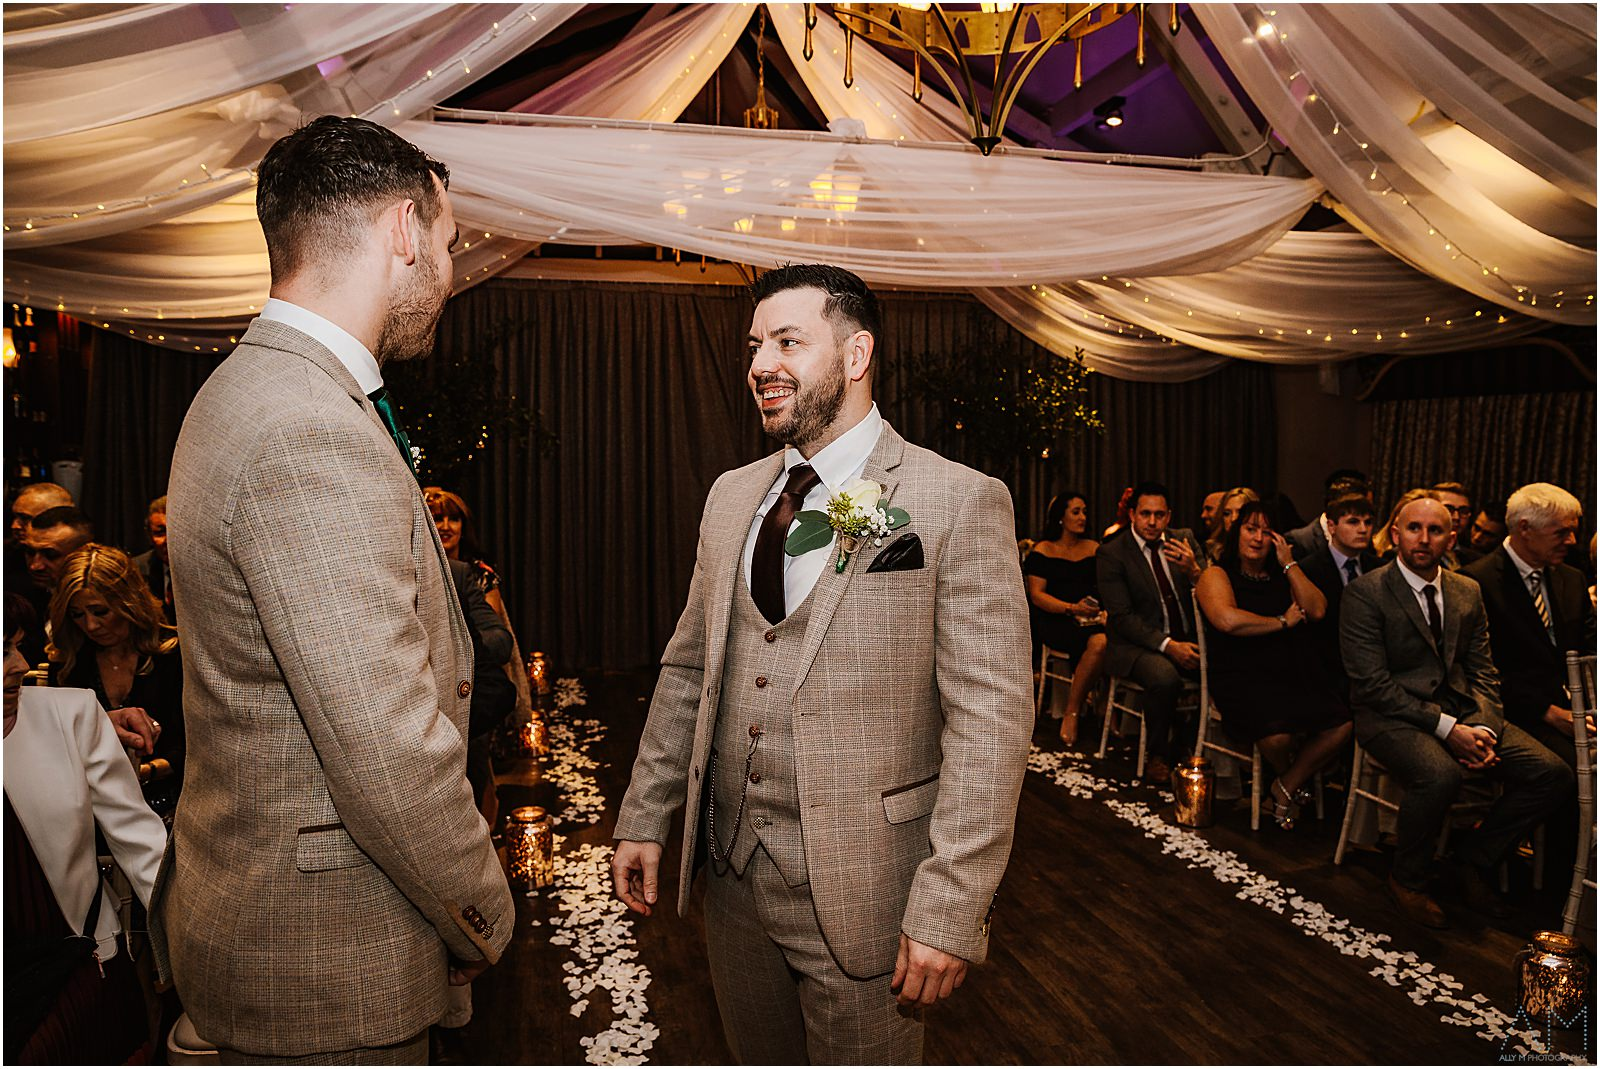 Groom smiling with his best man